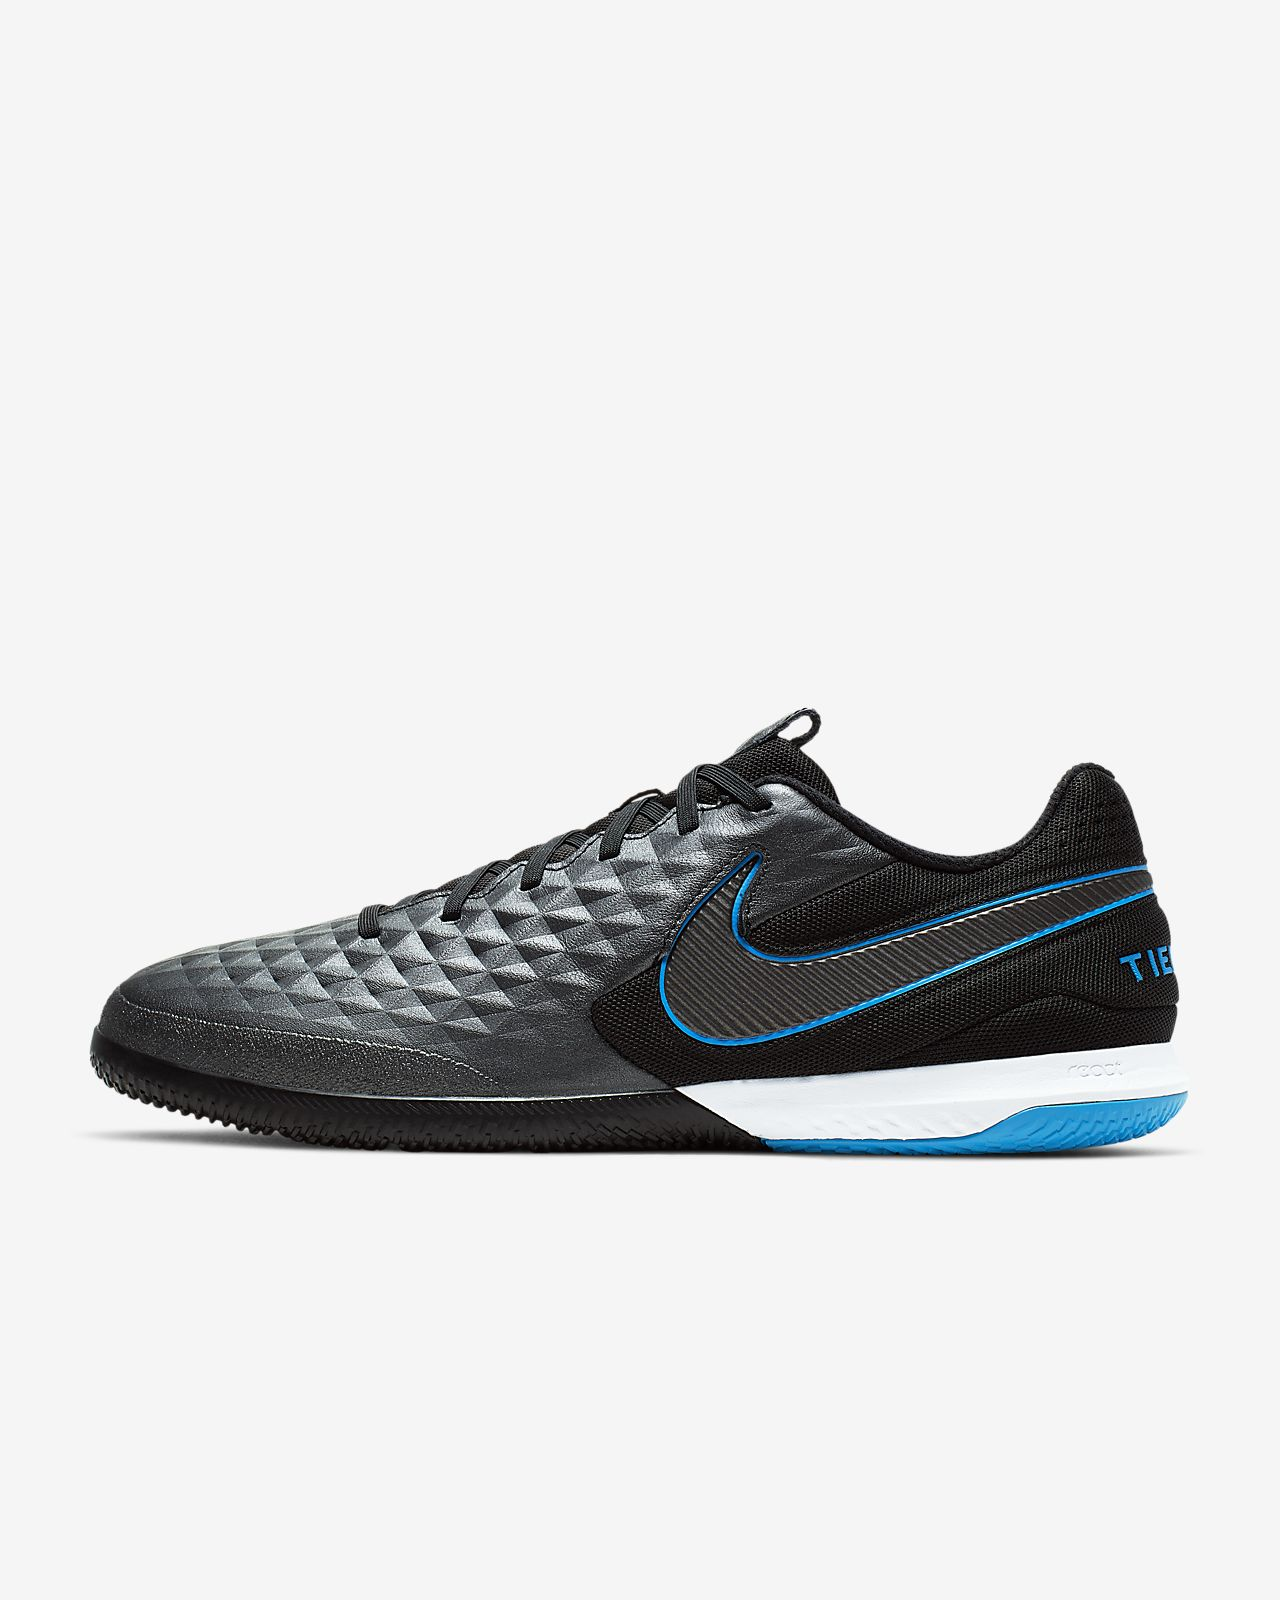 Pro Salle Chaussure Ic De React Legend Football Nike Tiempo 8 En zVLSpjGqUM